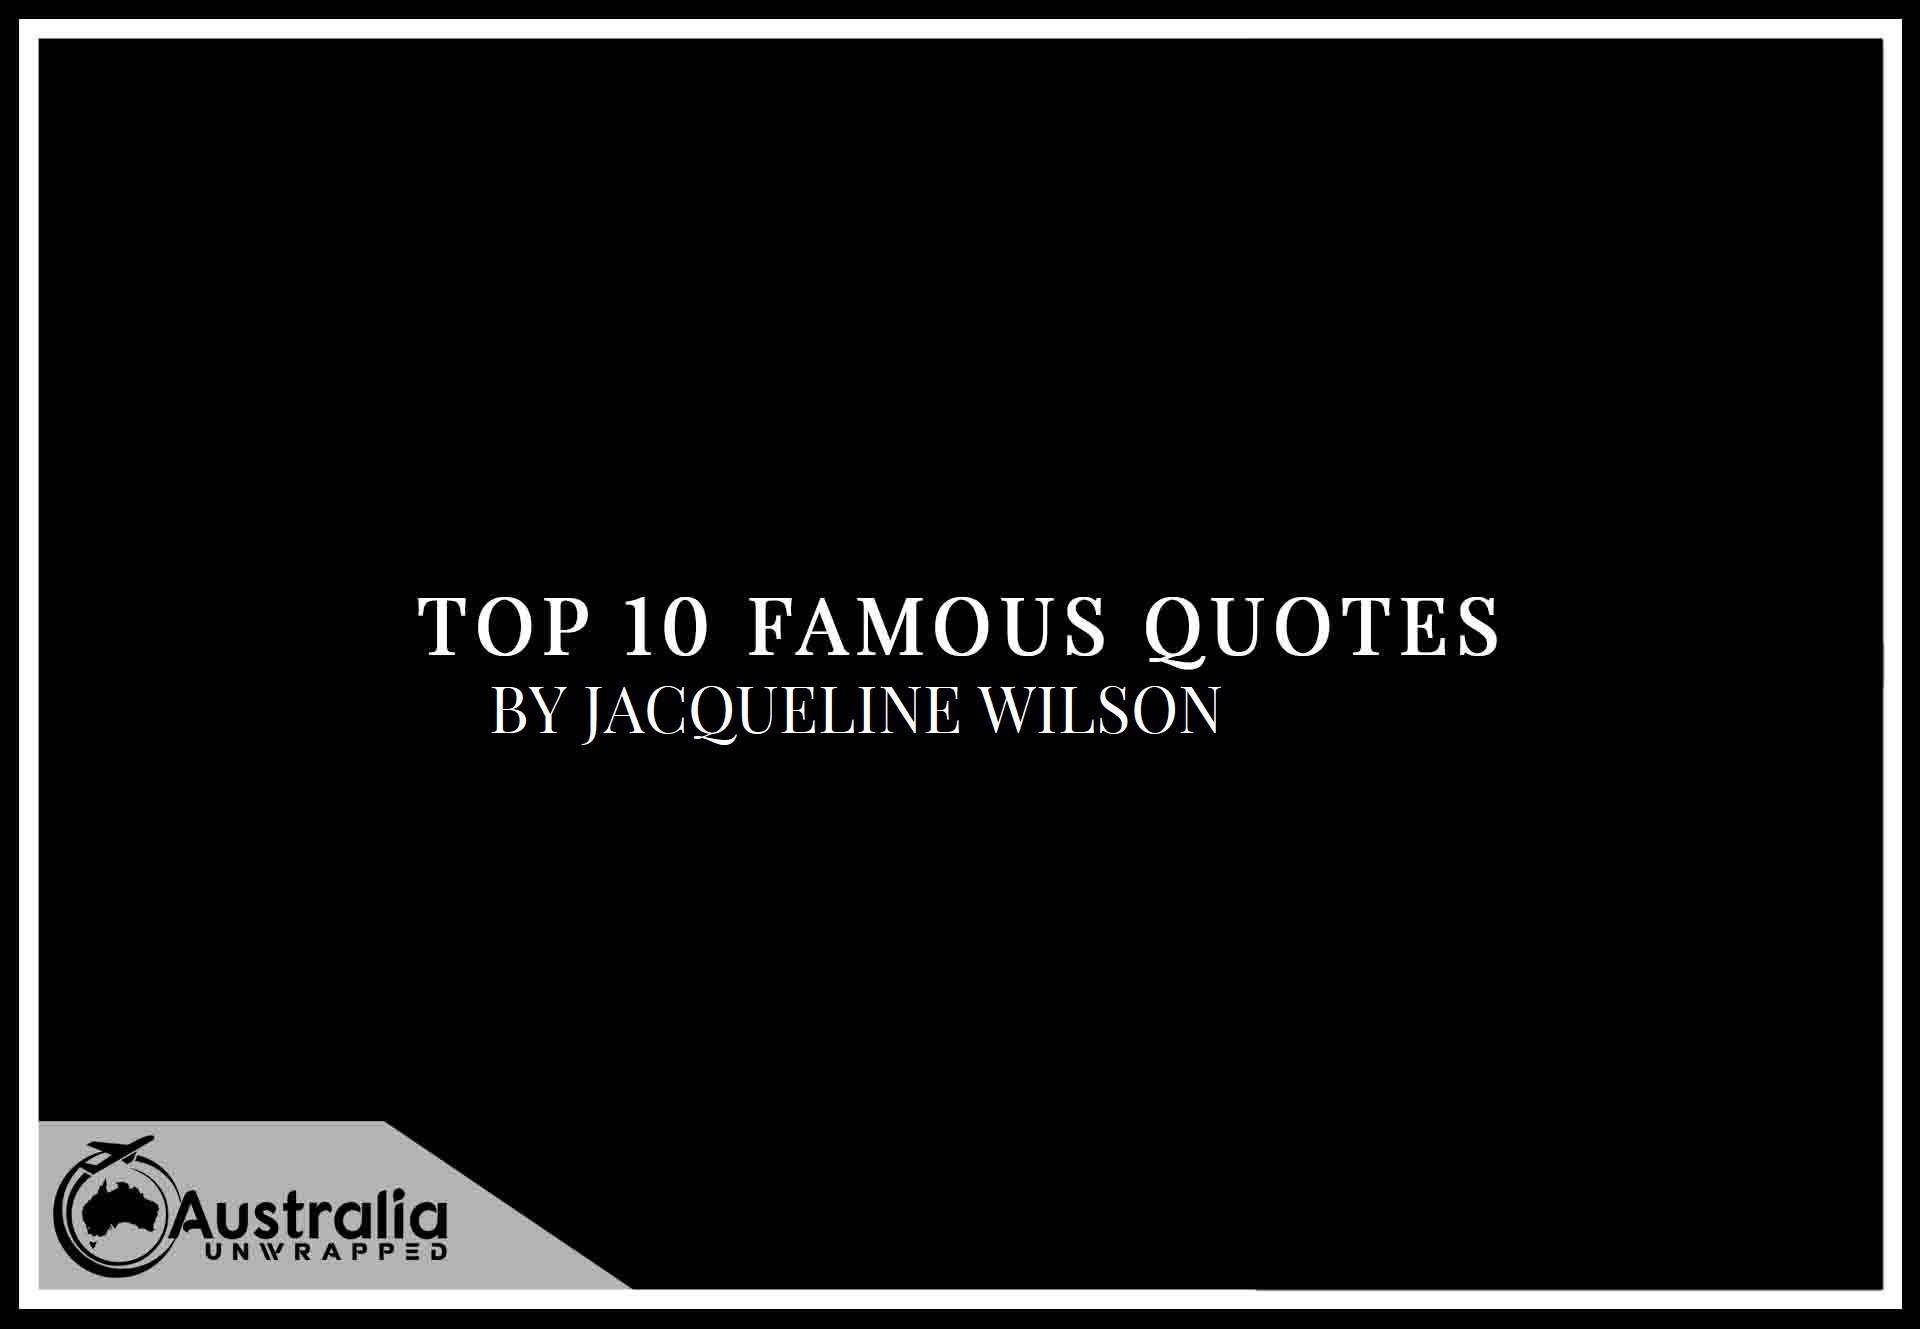 Top 10 Famous Quotes by Author Jaqueline Wilson